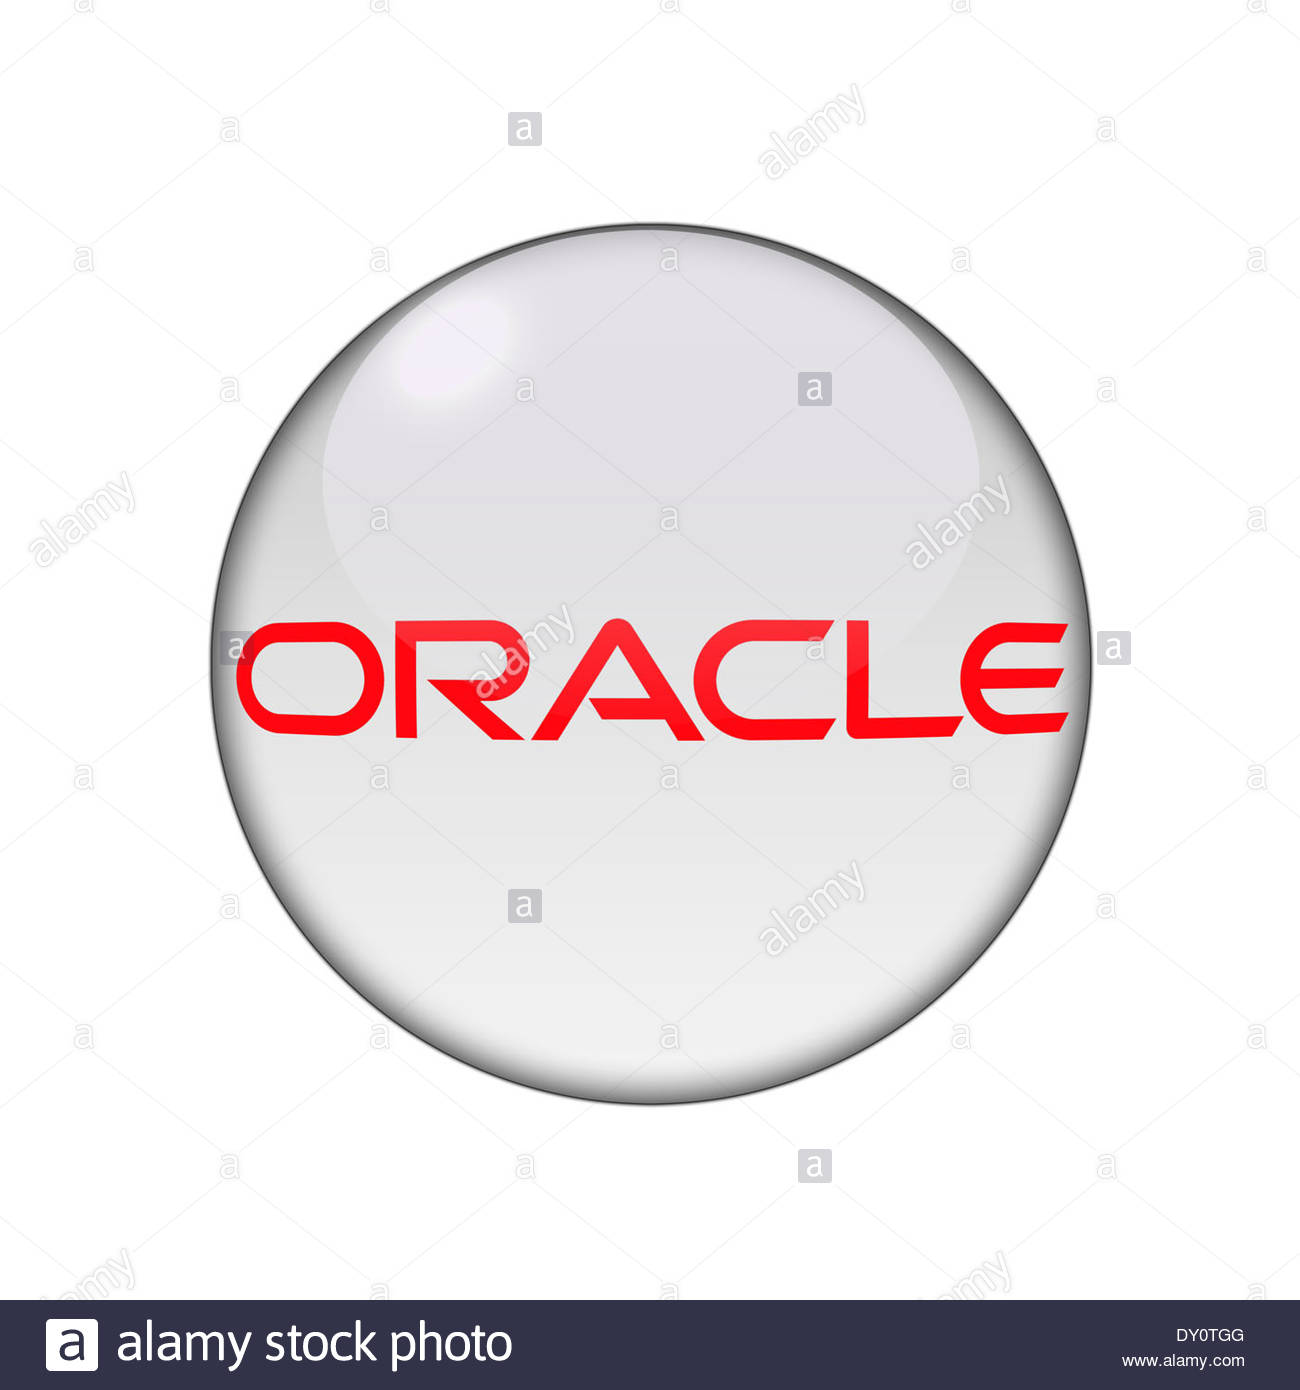 oracle icon logo stock photo 68246096 alamy american flag logo maker american flag logo design